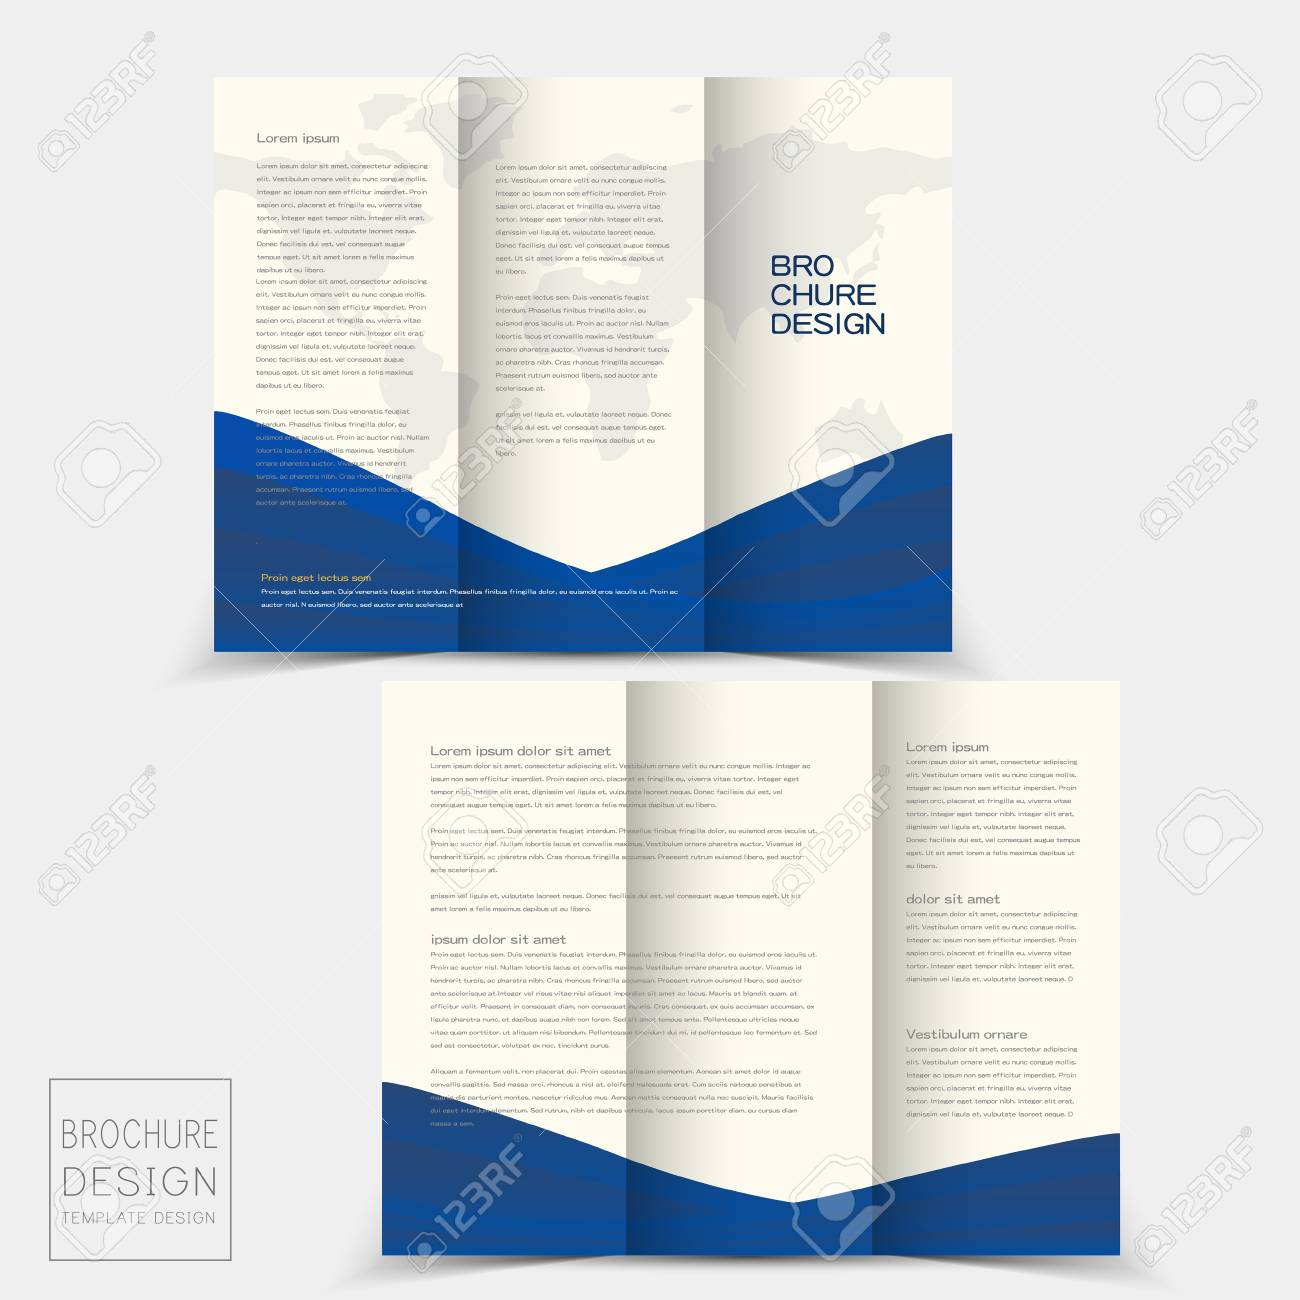 tri fold brochure design templates with dynamic wave in blue royalty